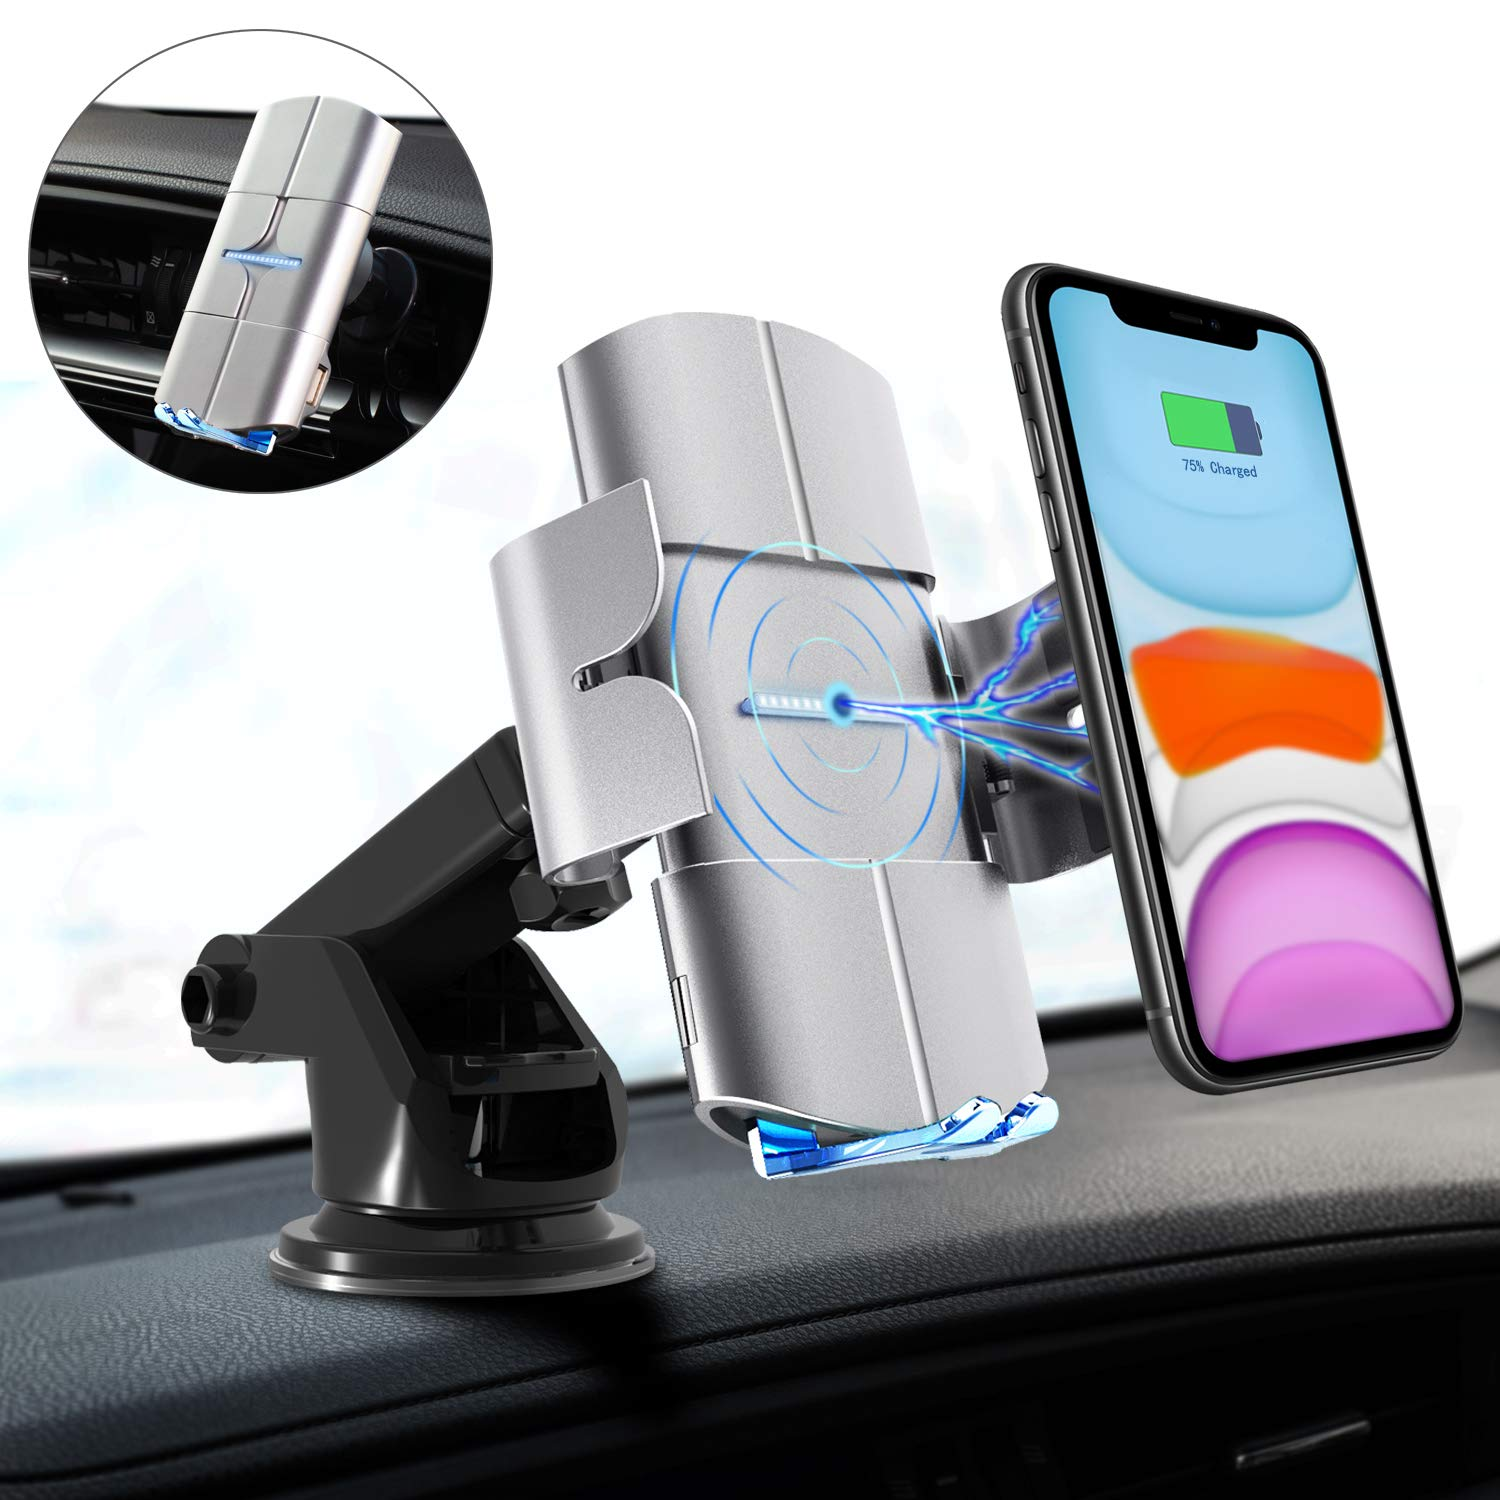 Wireless and Non-Wireless Phones- Black Auto Clamp Car Mount Voice Prompt 10W Qi Fast Charging Holder Compatible with iPhone Samsung Windshield Dashboard Air Vent Blinkbrione Wireless Car Charger